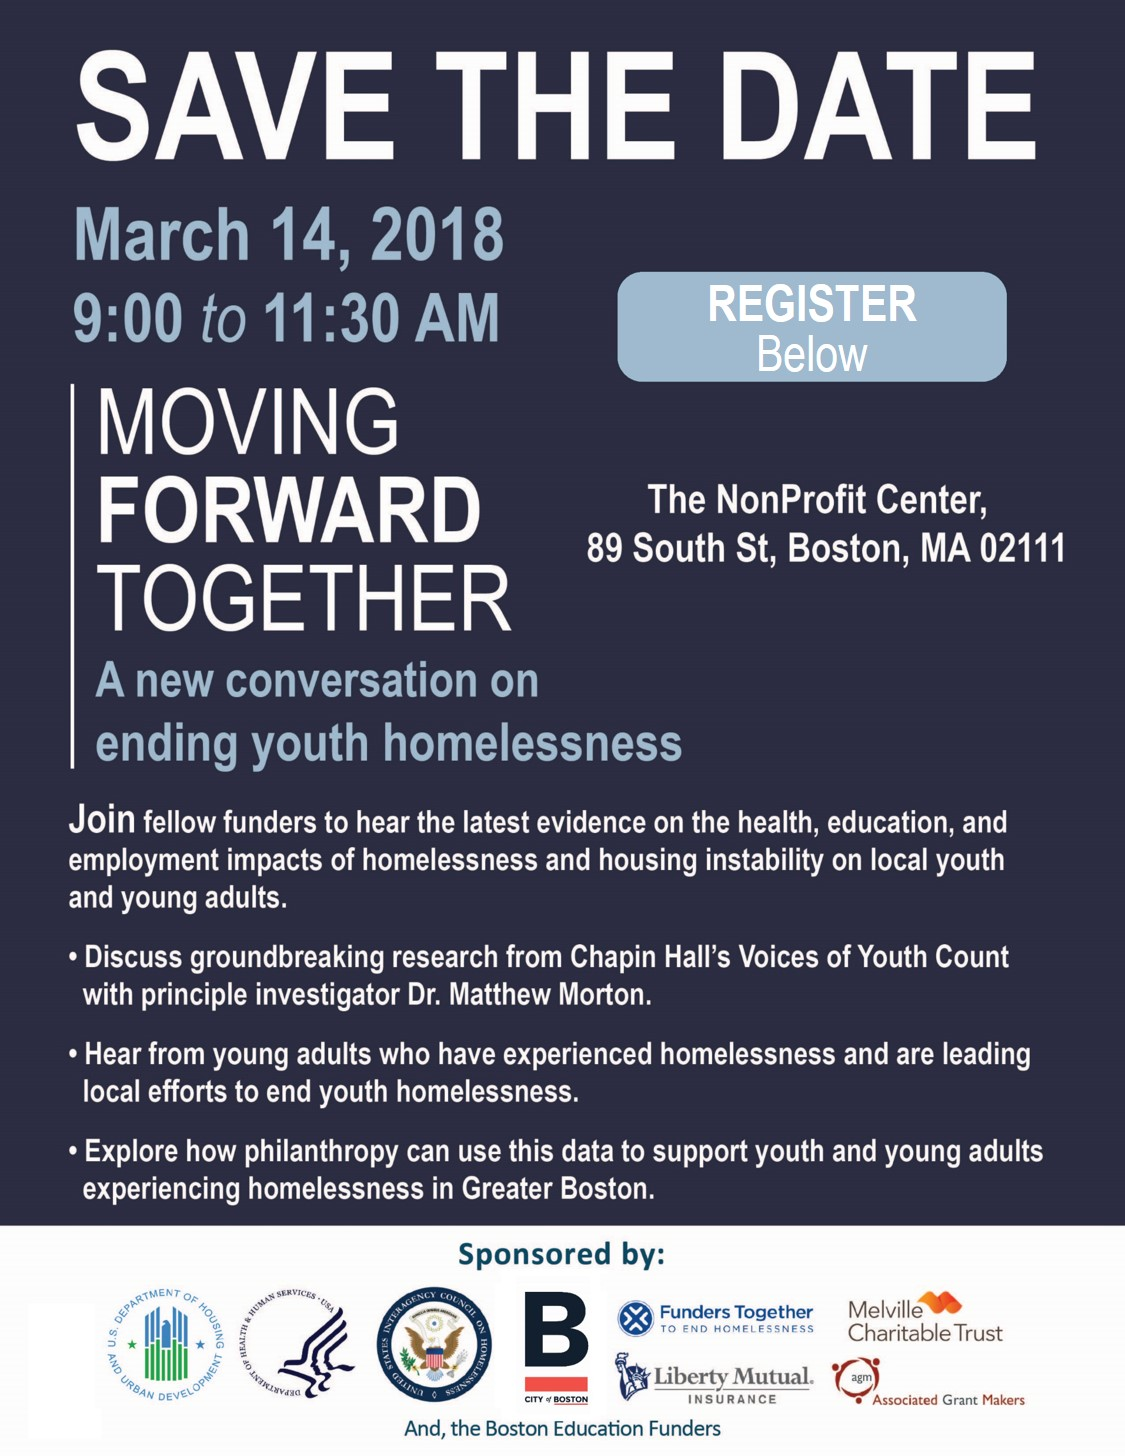 MOVING_FORWARD_TOGETHER_STDRV3-01_Add_Boston_Logo_Register_Below_2.jpg